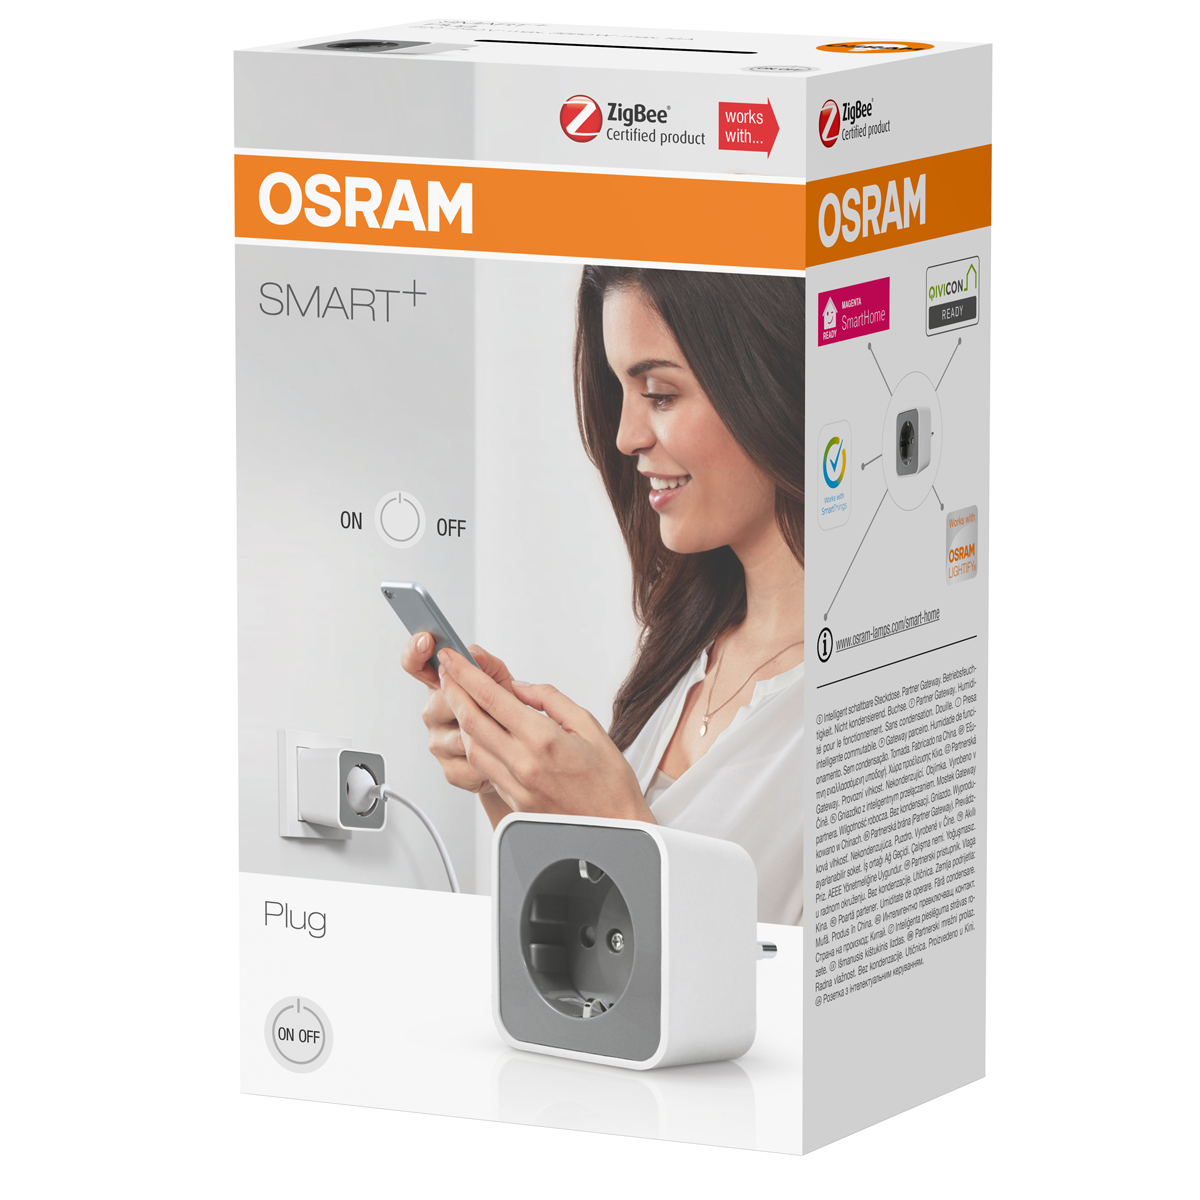 osram smart plug lightify kompatibel smart home steckdose m repeaterfunktion 4058075036239. Black Bedroom Furniture Sets. Home Design Ideas